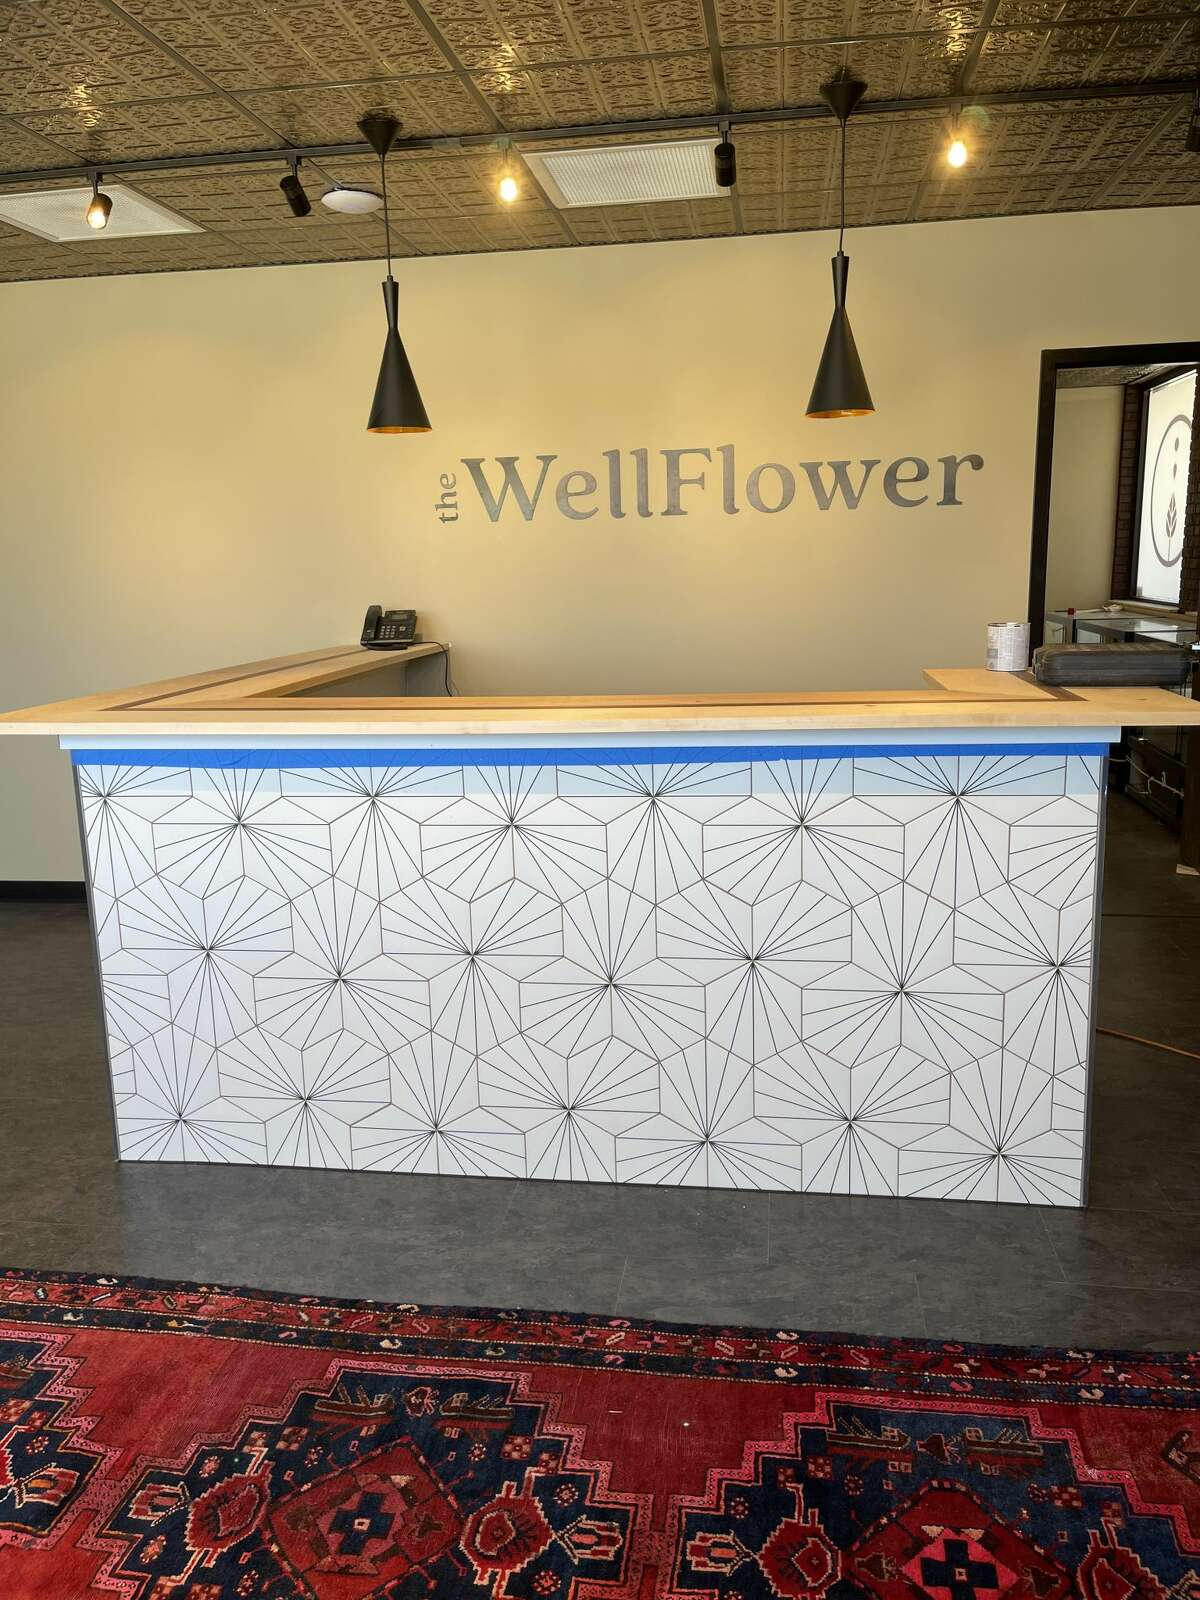 Robert McCurren, CEO of The WellFlower, has a background as an ER physician and said his business focuses on the medicinal and wellness aspects of cannabis. (Courtesy photo)